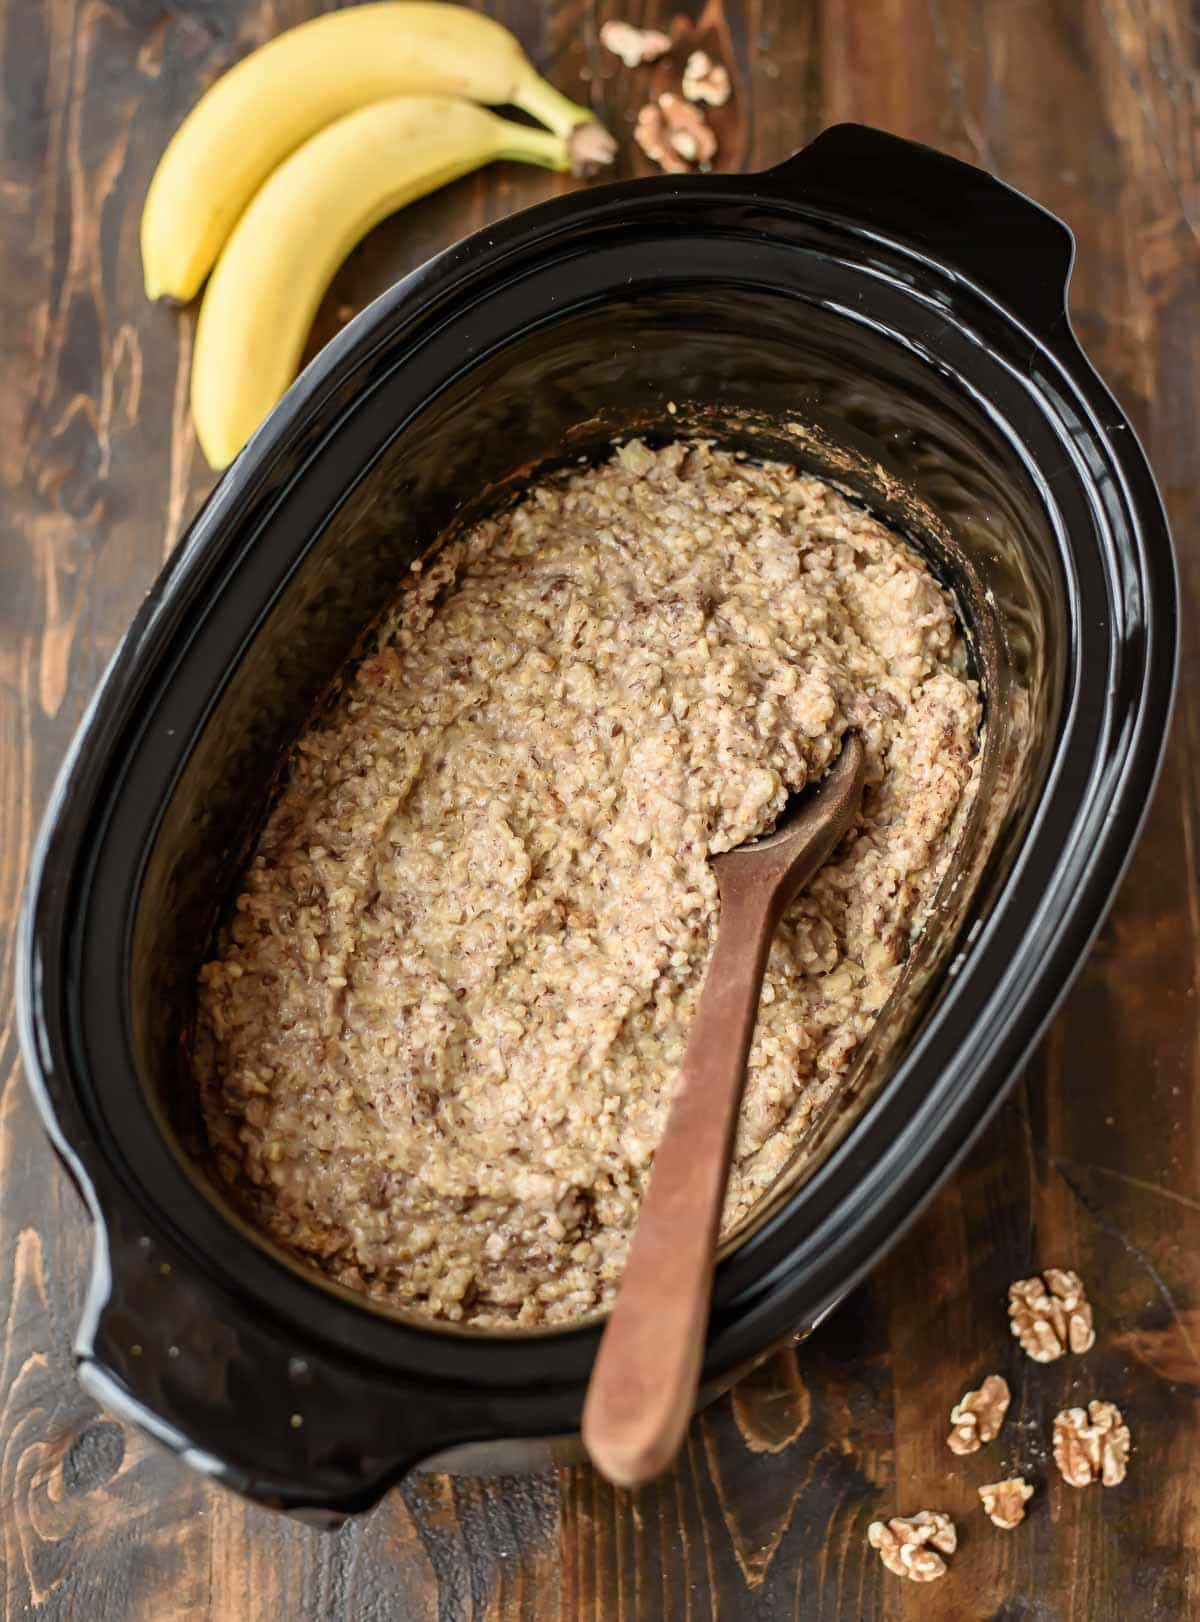 Overnight Steel Cut Oats made in the slow cooker. With banana, cinnamon, and nutmeg, this healthy oatmeal tastes like banana bread. You'll love waking up with breakfast ready to eat!